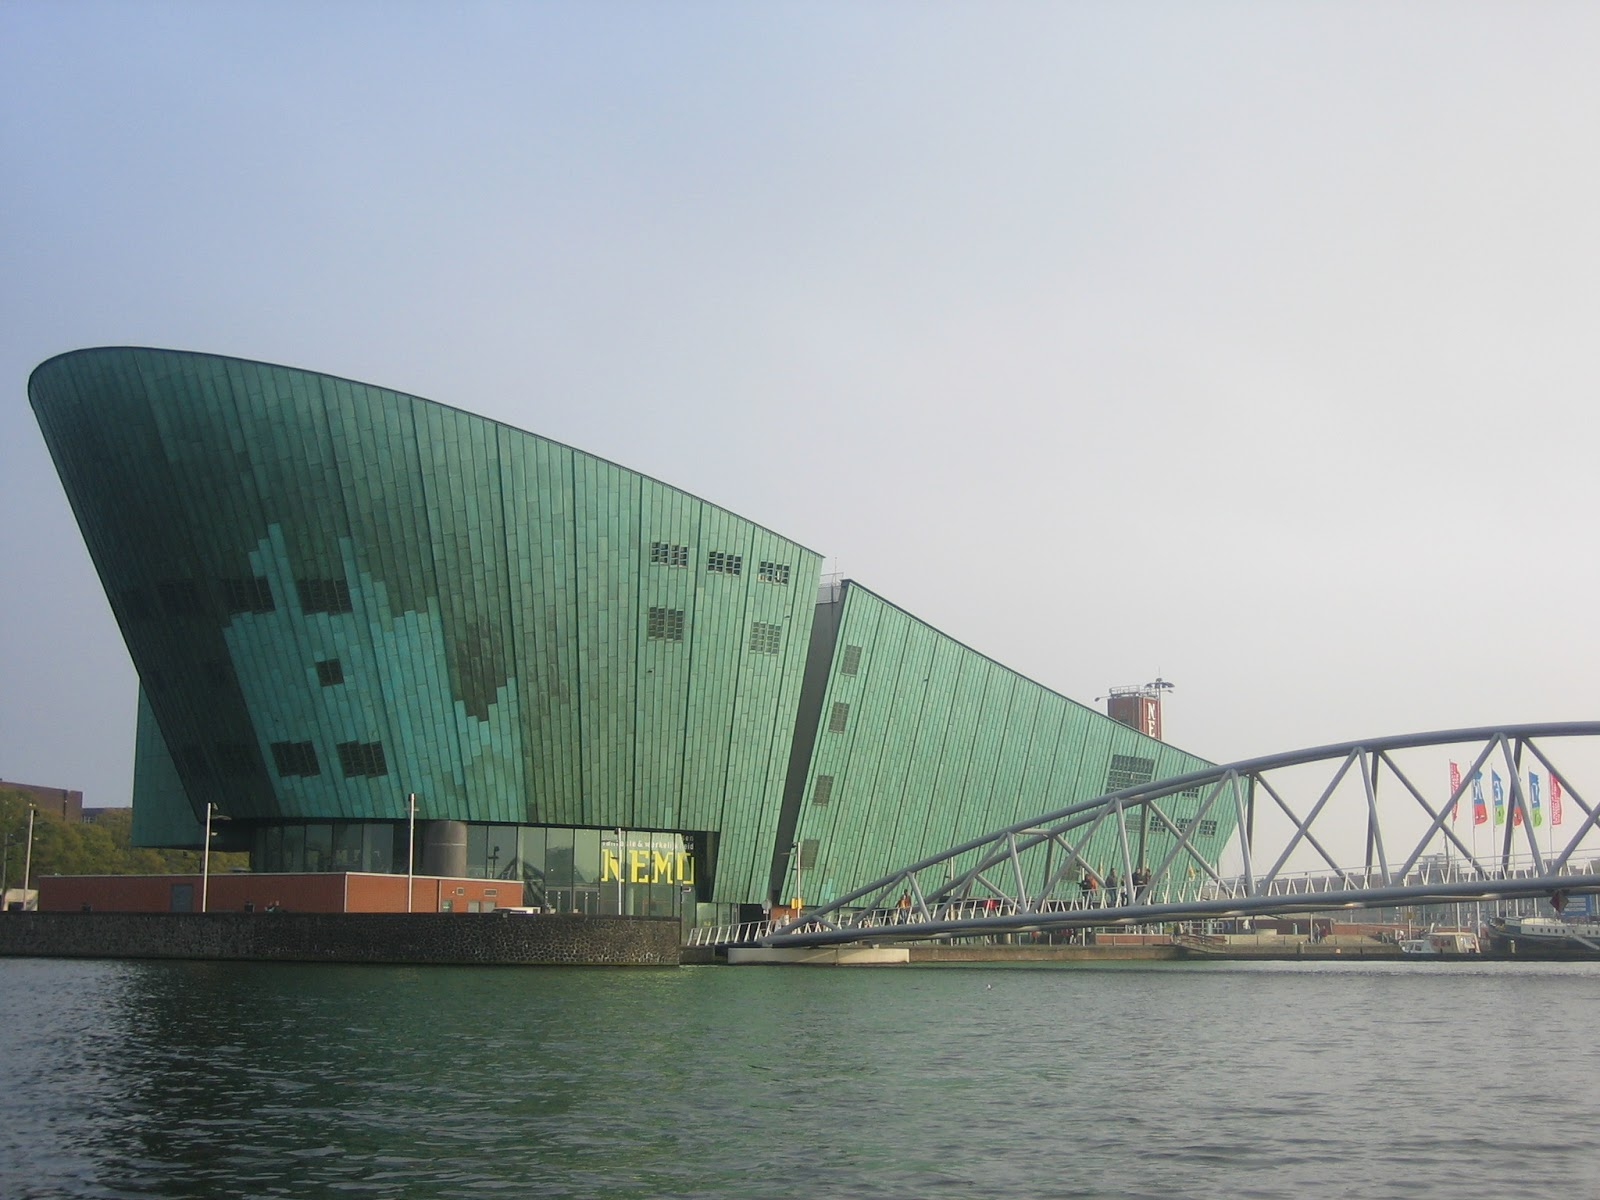 family-friendly Amsterdam - The Nemo Science Museum